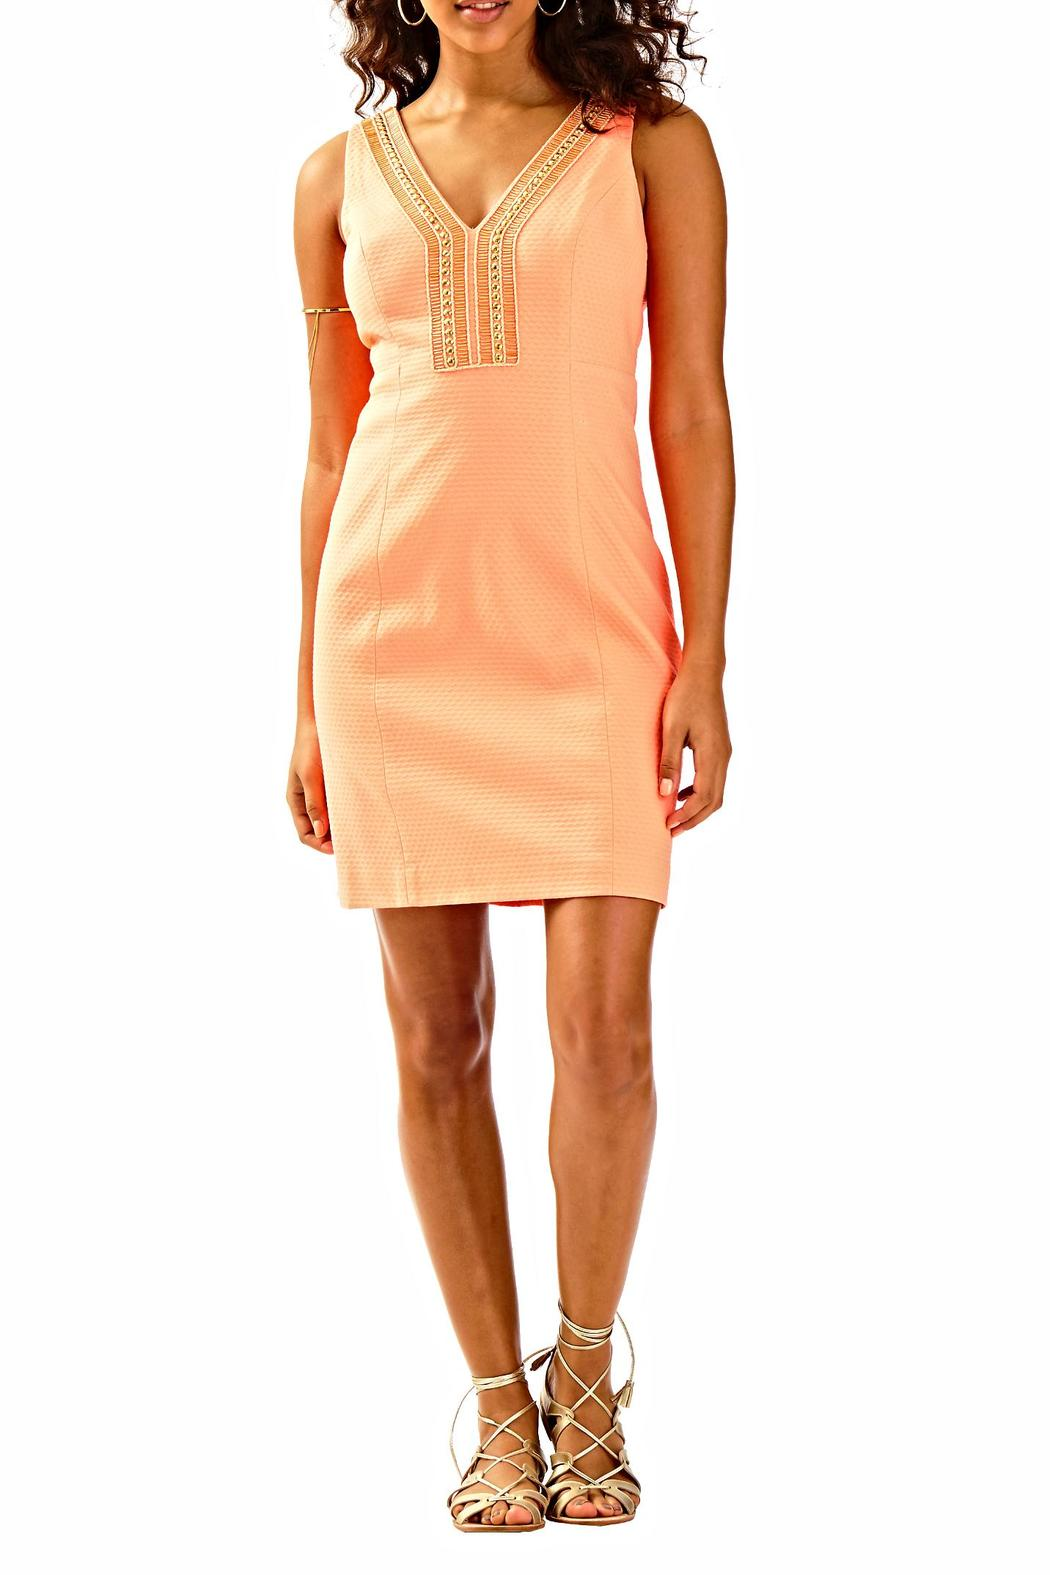 Lilly Pulitzer Eliot Shift Dress - Back Cropped Image